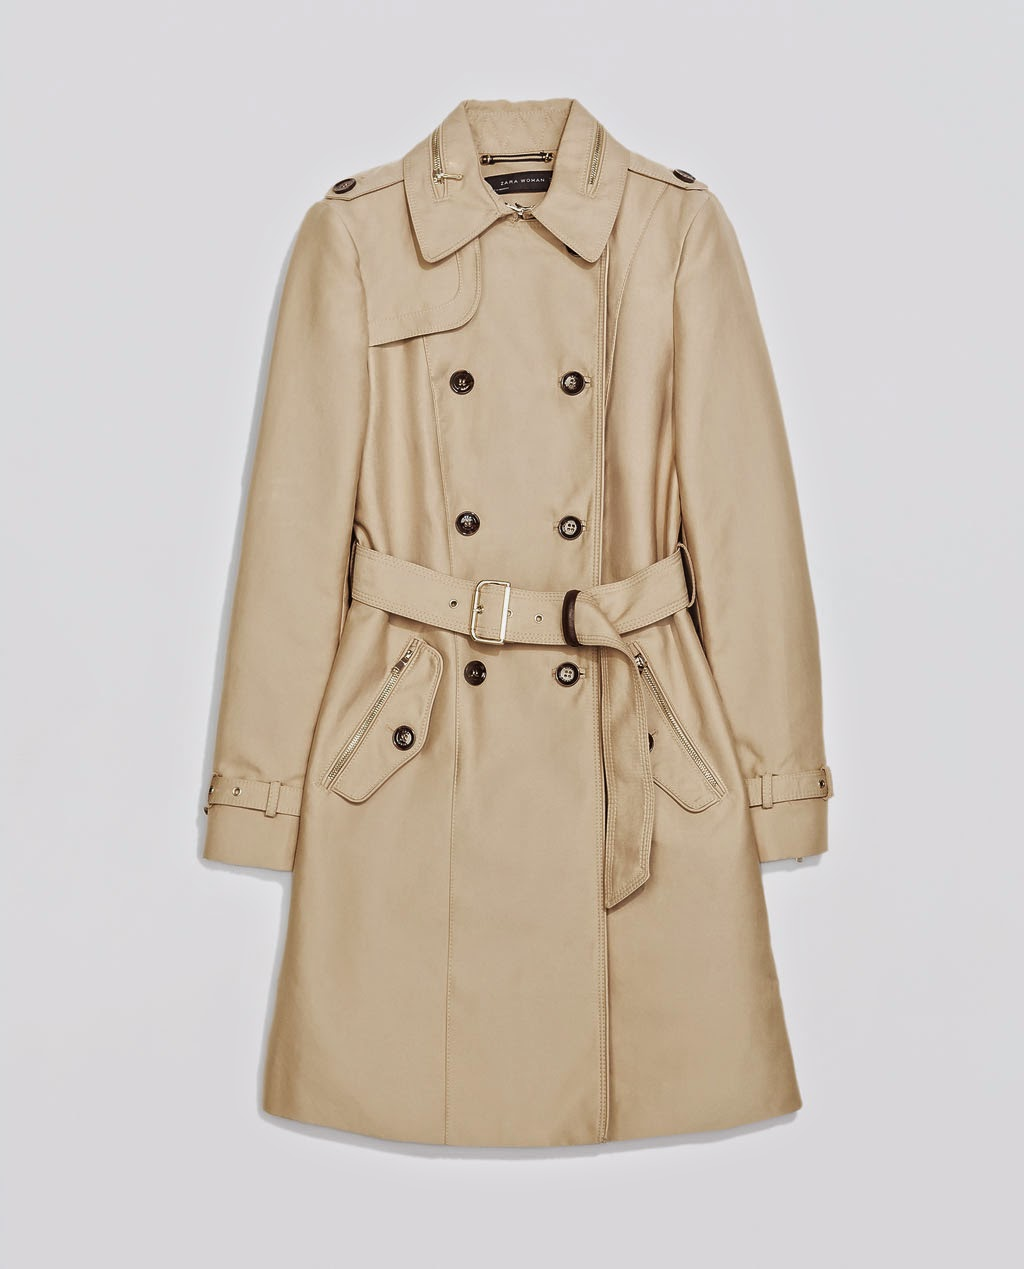 http://www.zara.com/us/en/woman/outerwear/trench-coats/double-breasted-trench-coat-c499003p1983522.html